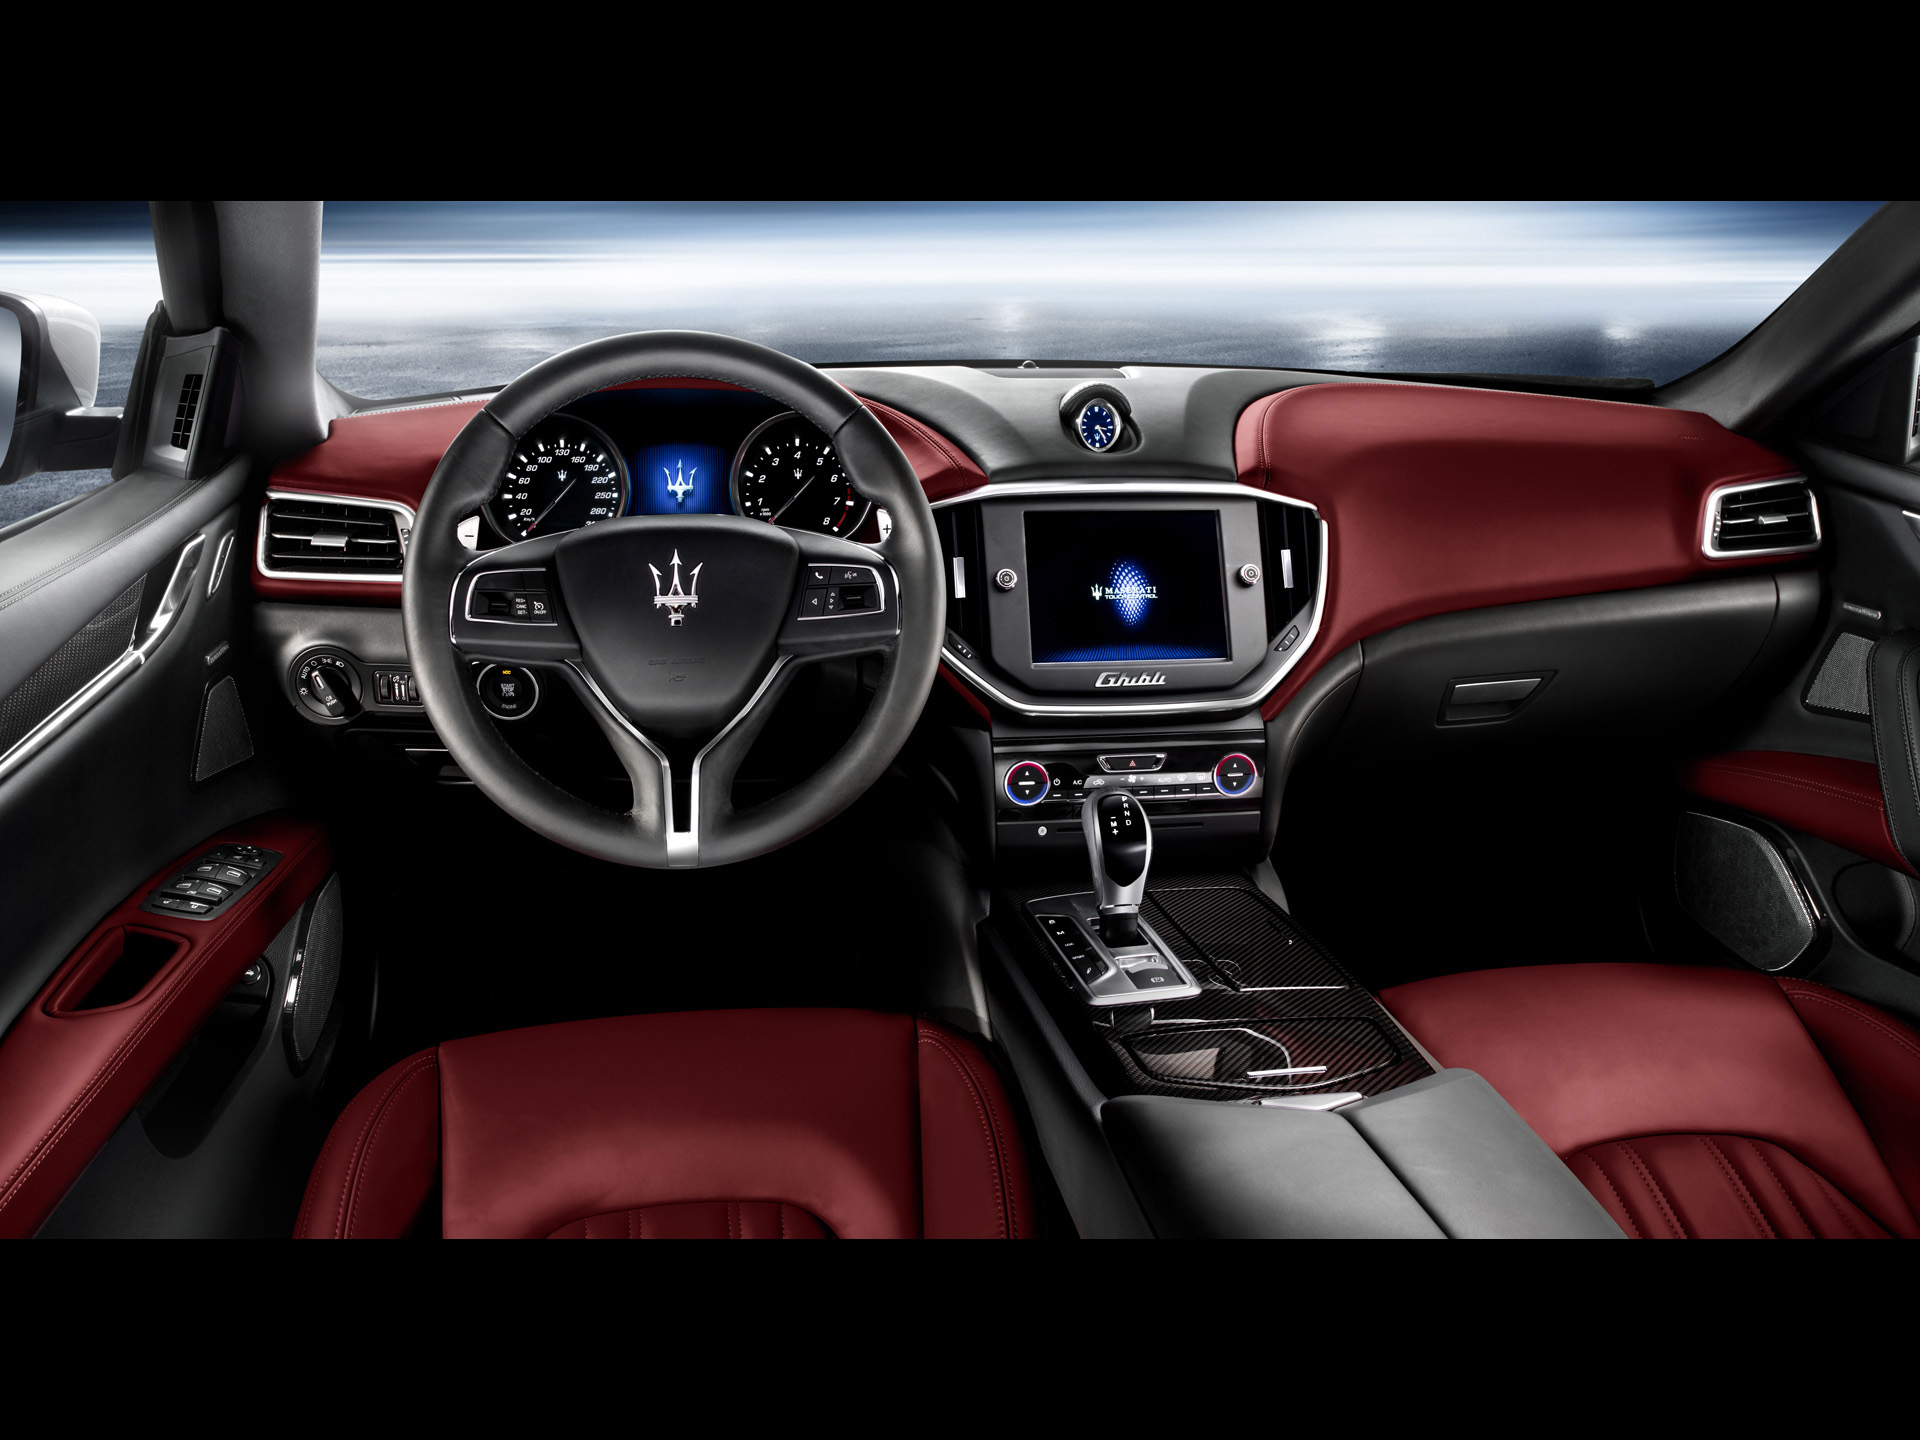 Super Car Images of Maserati Ghibli, Static Dashboard in Gray and Red, Decent and Great in Look 1920X1440 free wallpaper download